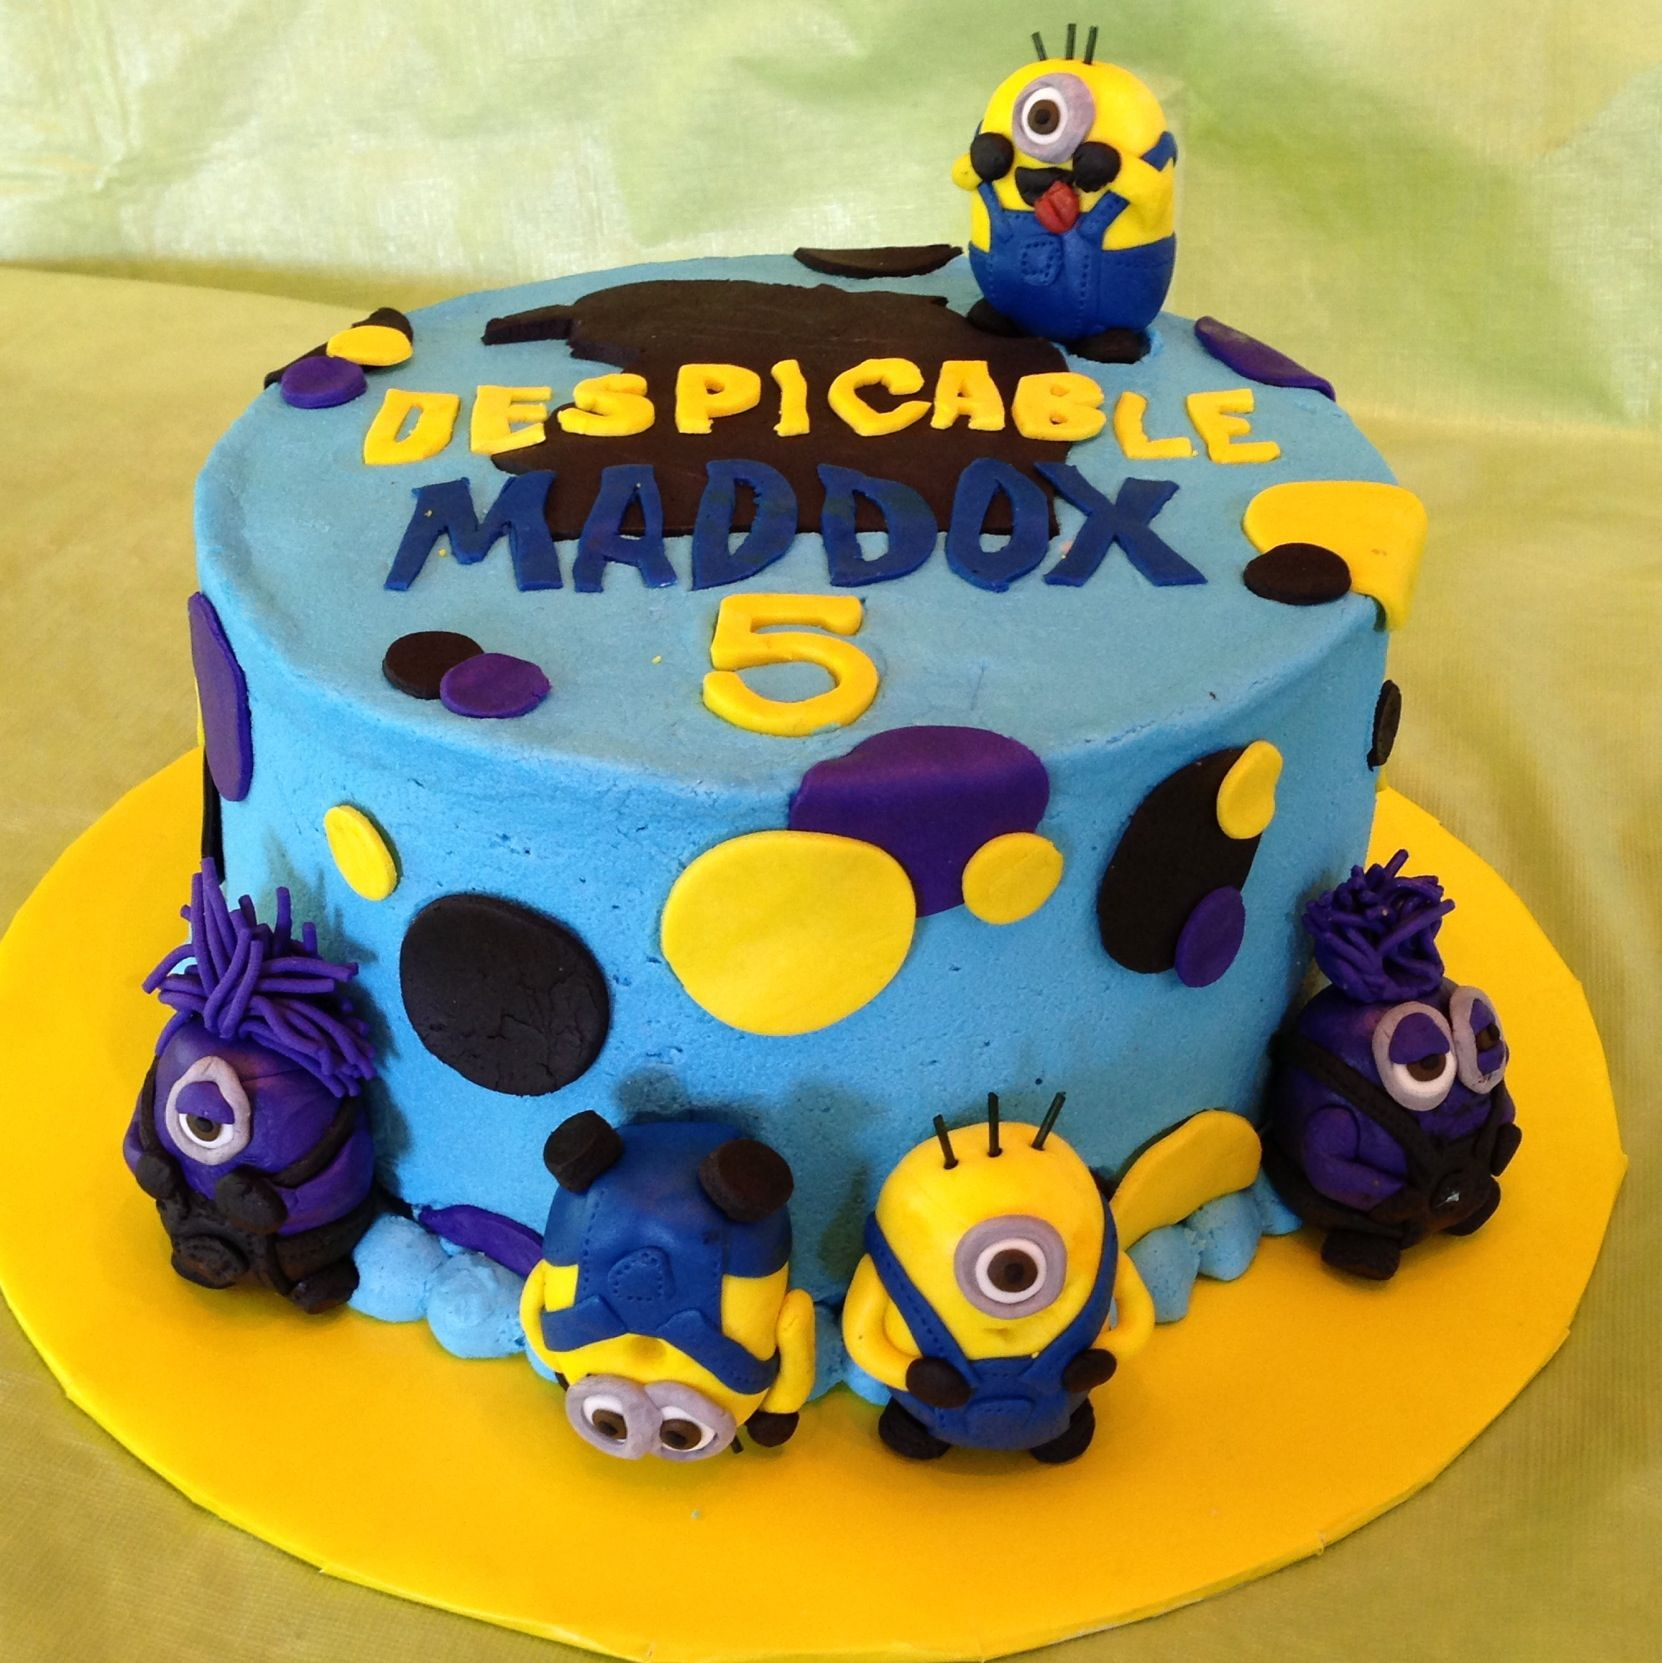 Magnificent Despicable Me 2 Cake Boy Birthday Cake Cool Birthday Cakes Funny Birthday Cards Online Inifofree Goldxyz